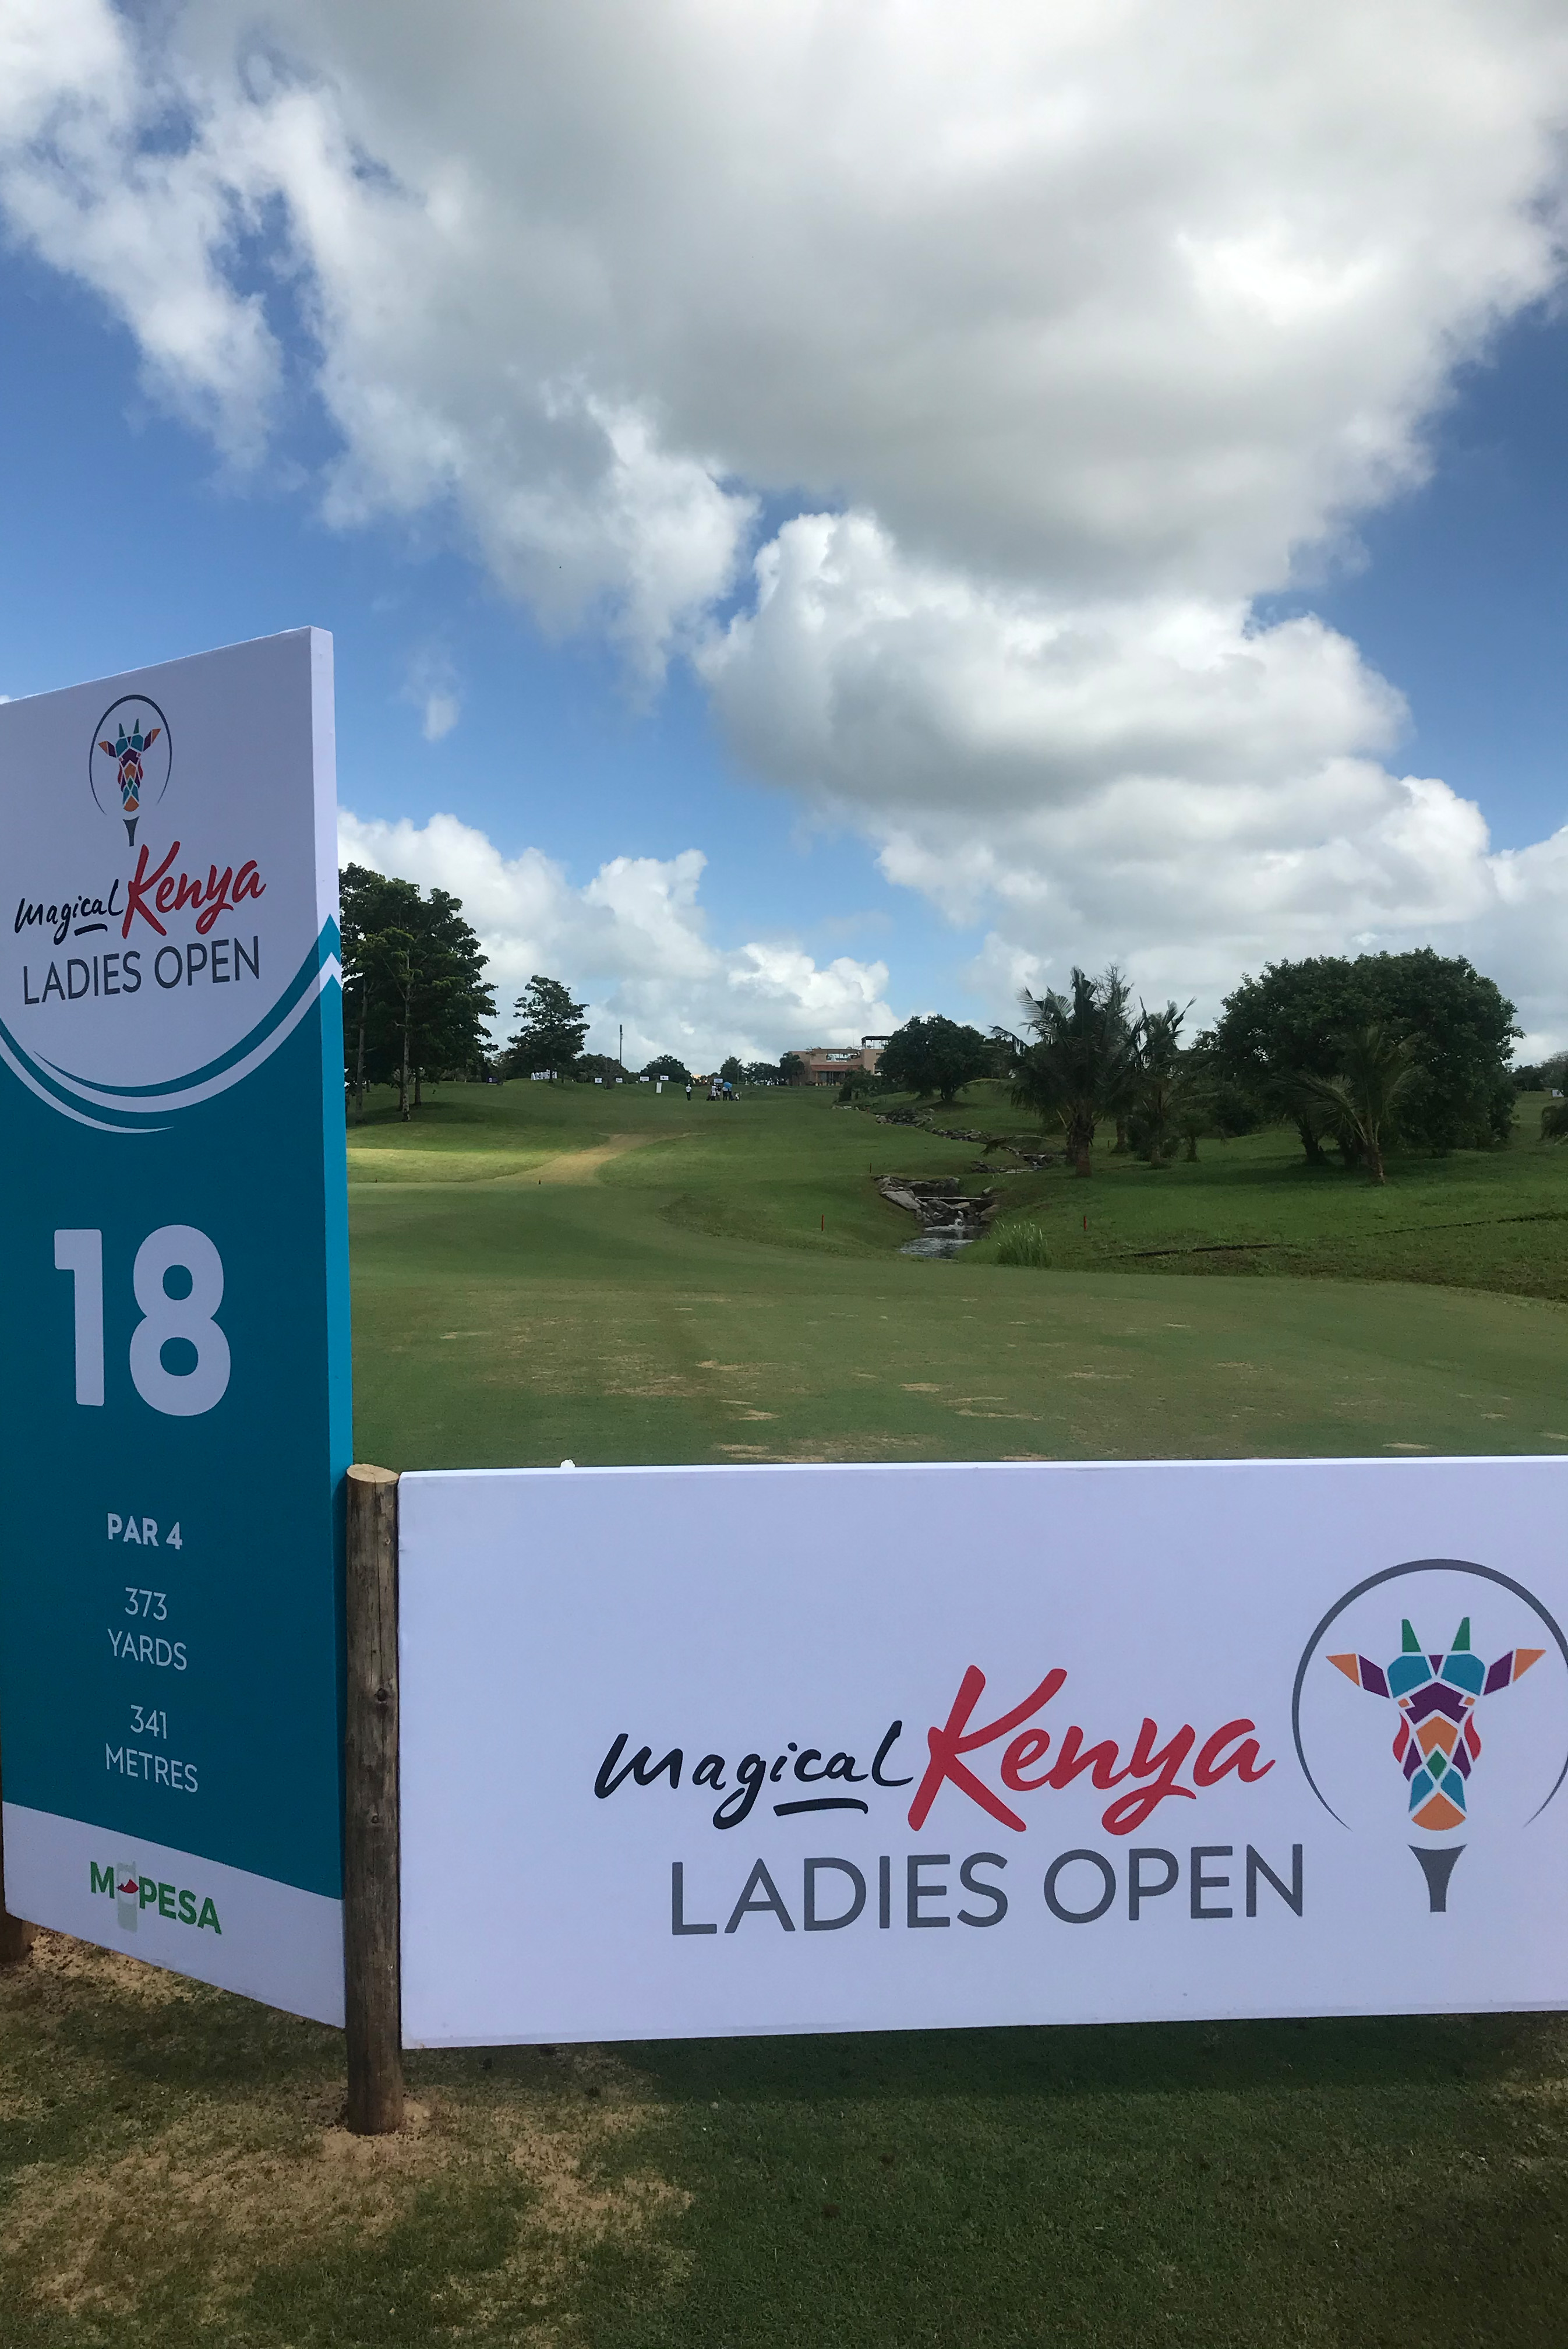 Magical Kenya Ladies Open: